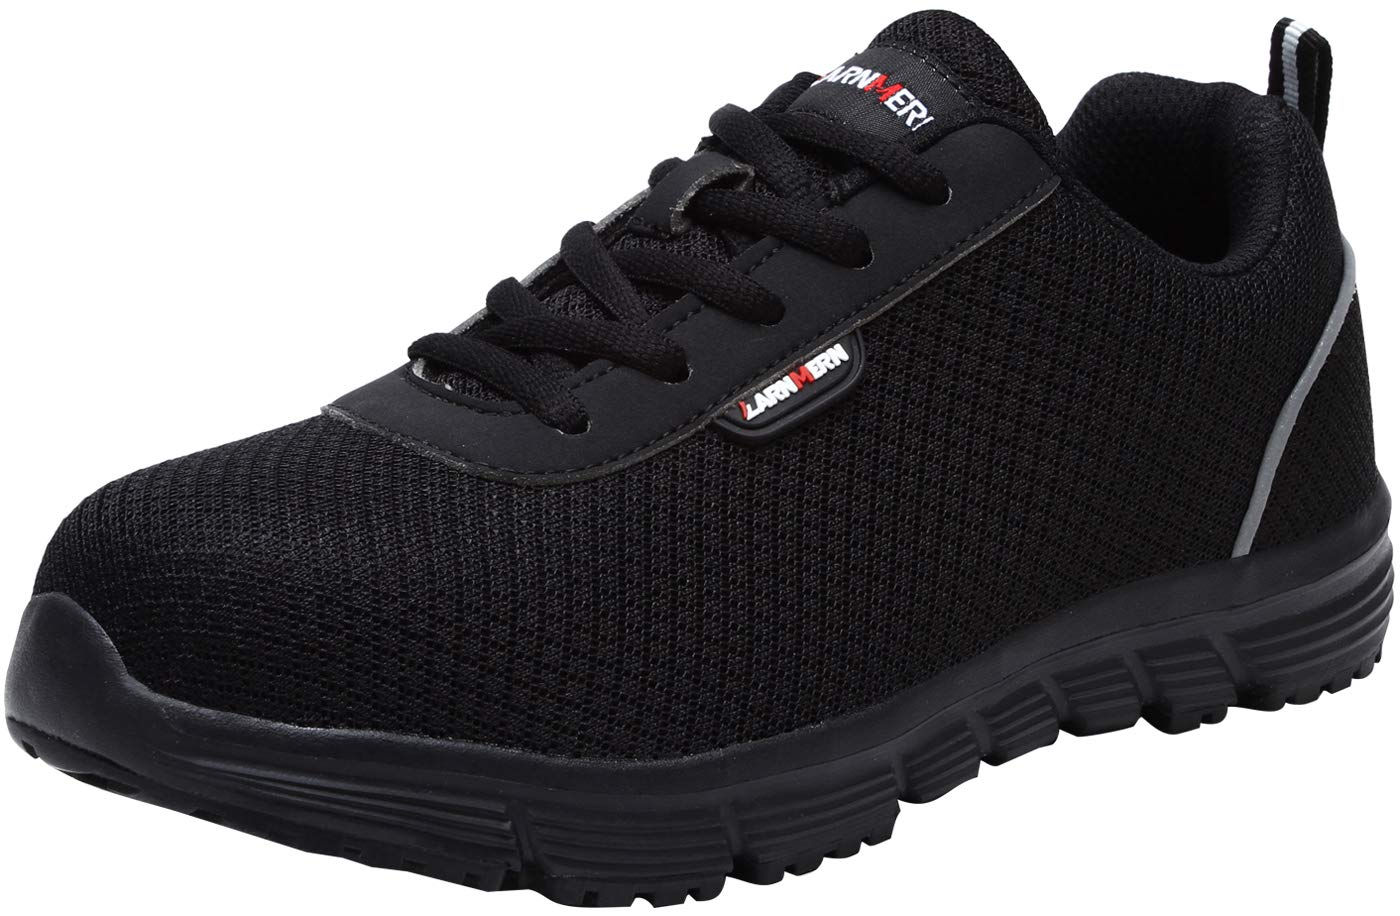 LARNMERN Steel Toe Shoes for Women,Breathable and Comfortable Work Shoes for Women